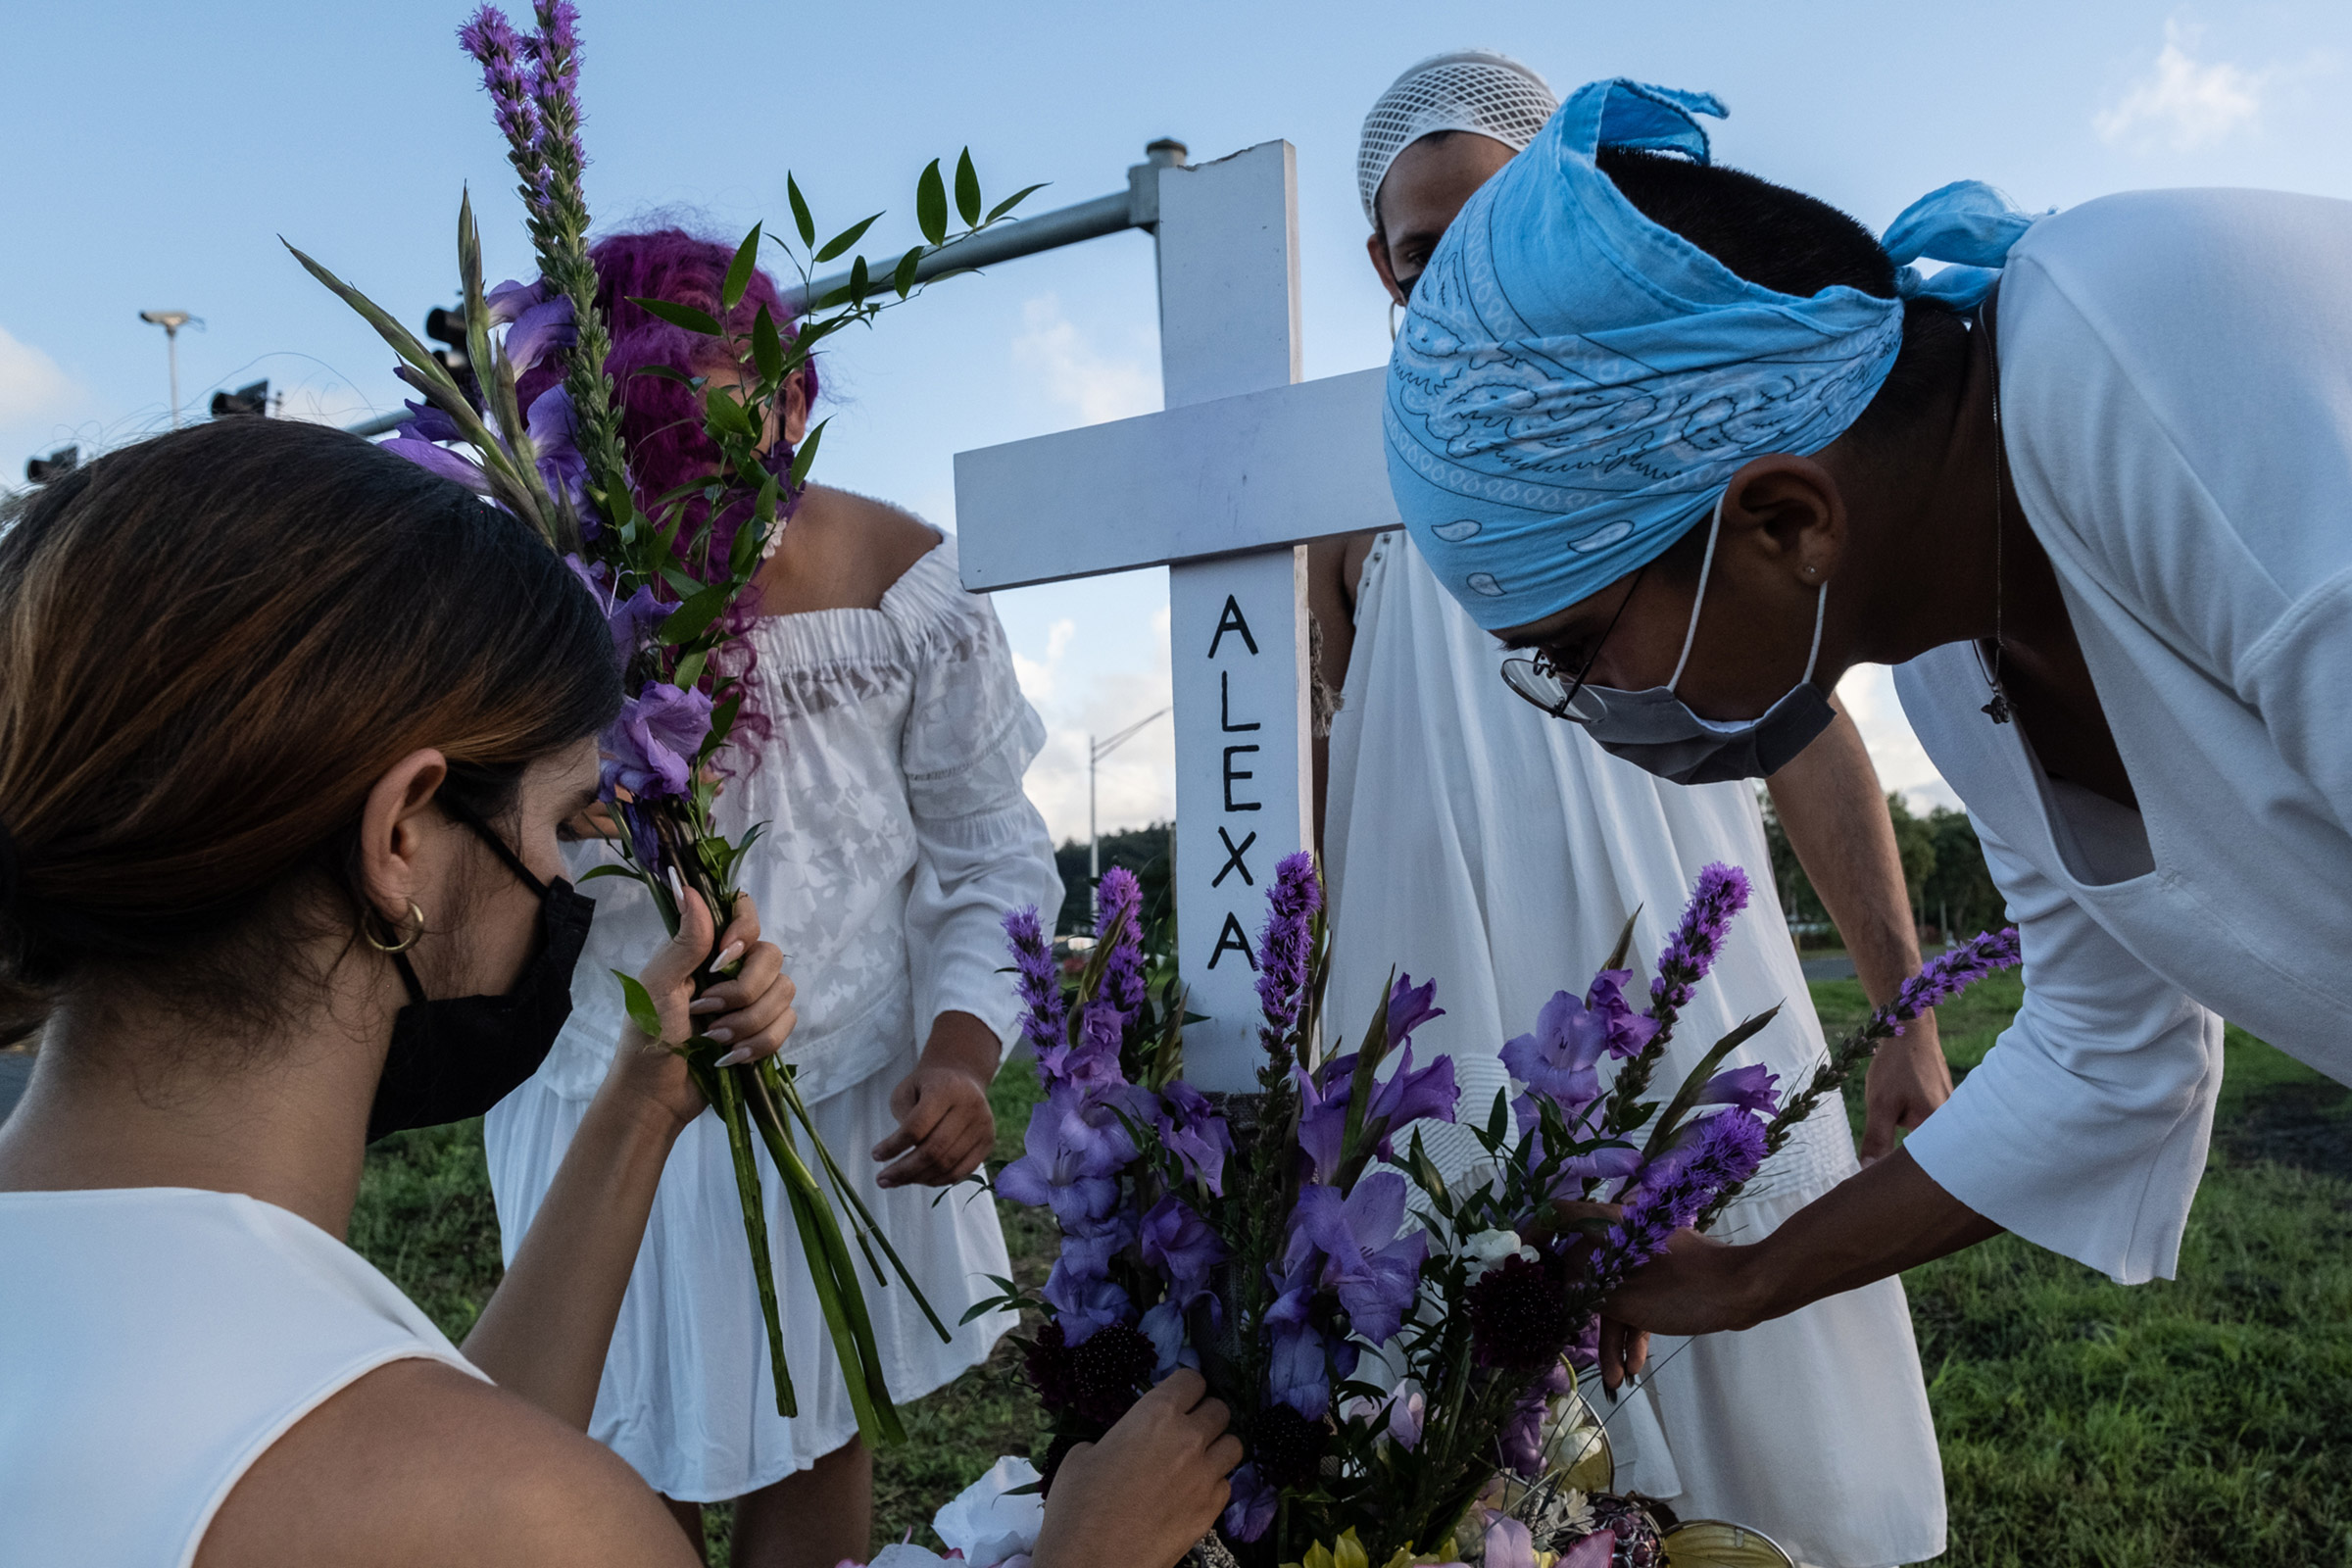 Members of House of Grace pay respects to Alexa Negrón Luciano, a transgender woman who was murdered in February 2020, on the site of a makeshift grave dedicated to her in Toa Baja, Puerto Rico.